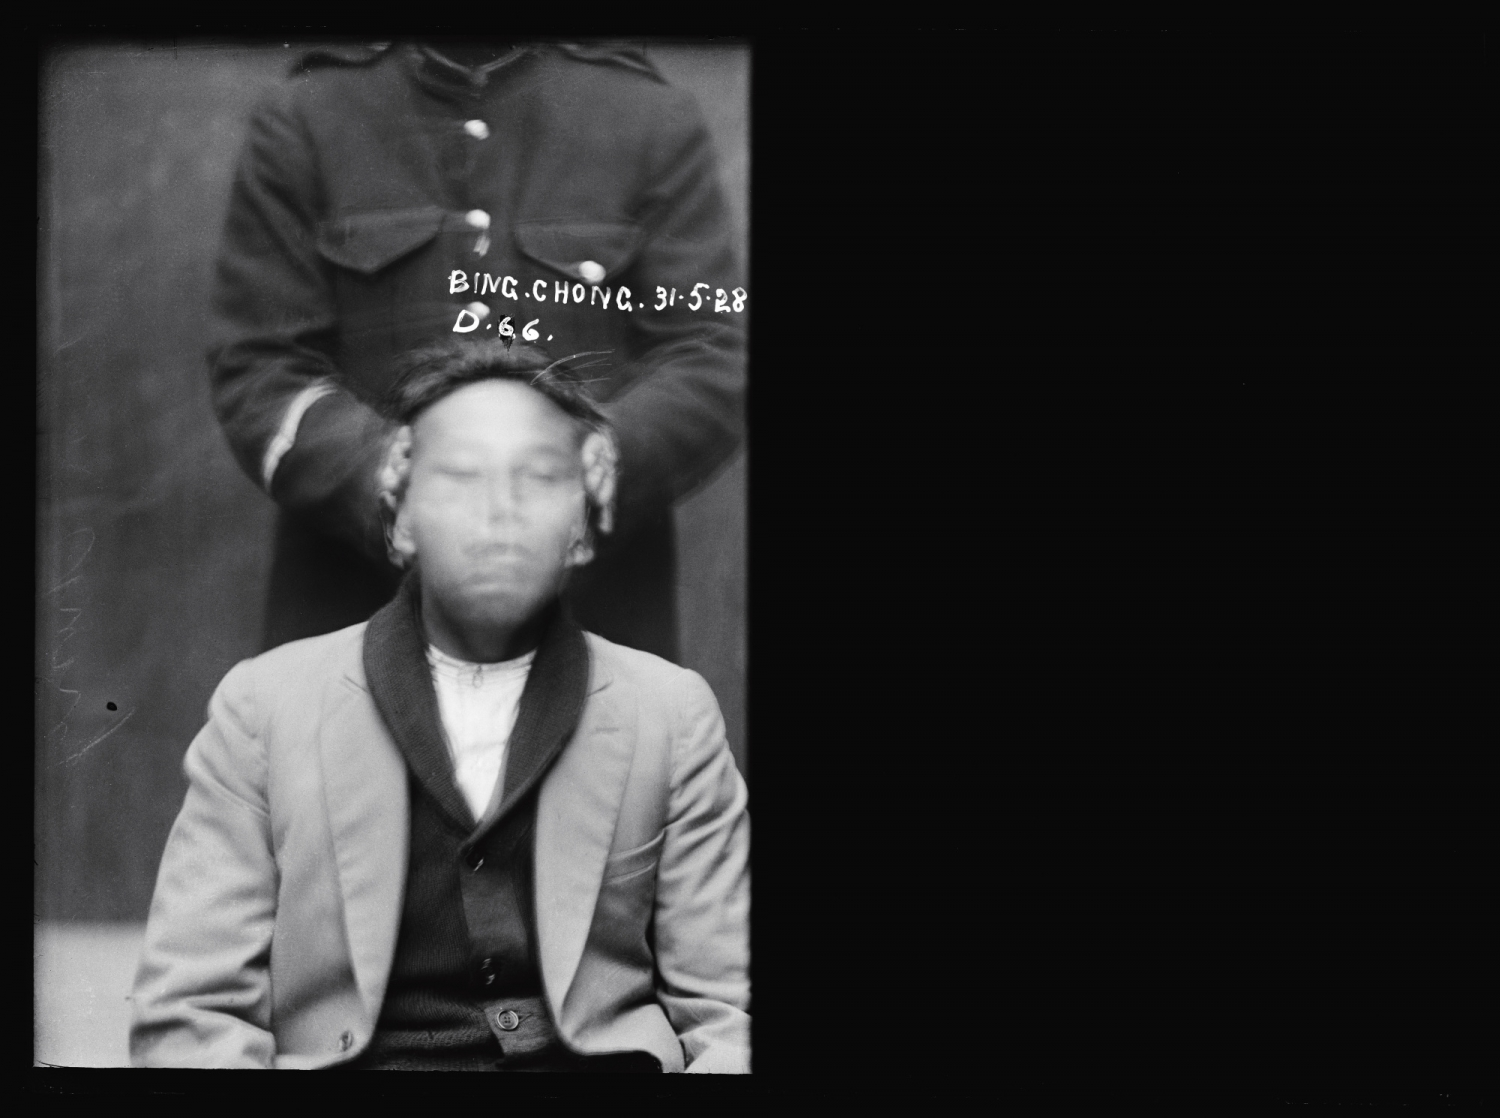 Half of dual mugshot showing blurred face of seated man with head being held by pair of hands.